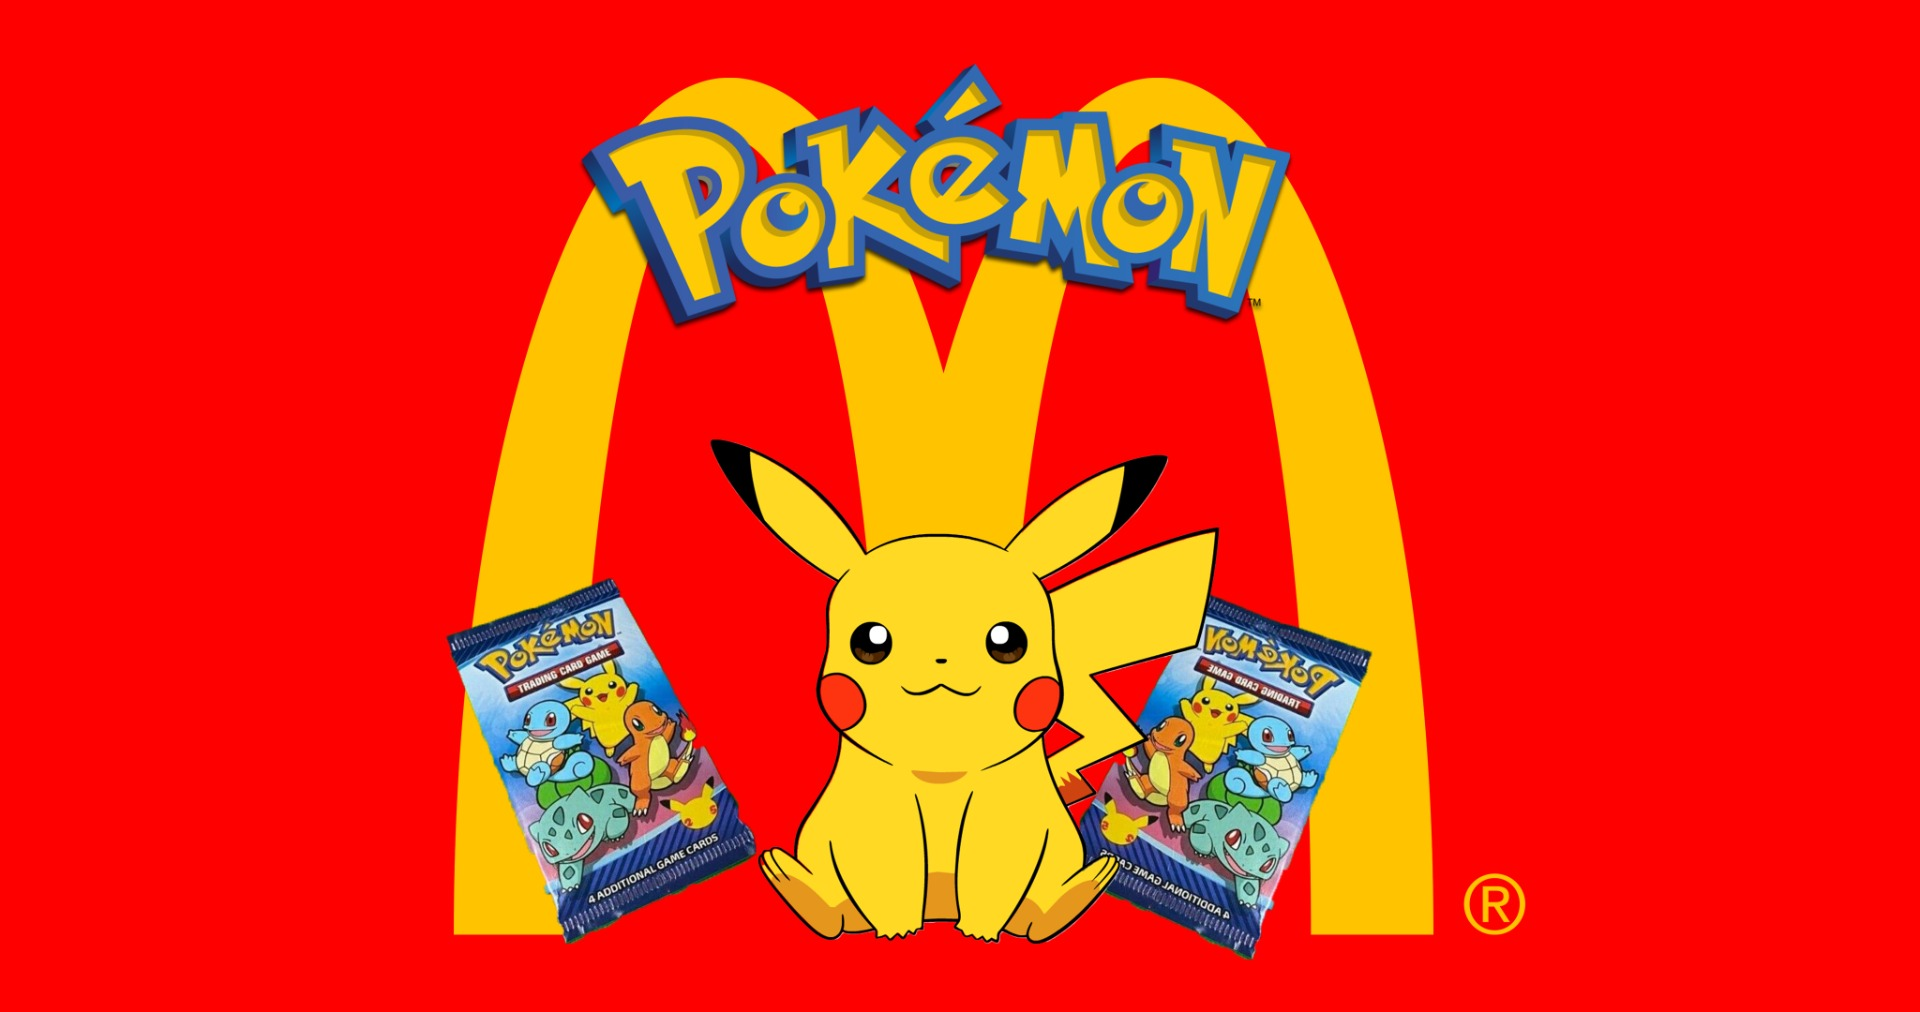 Pokemon McDonalds packs 25th Anniversary